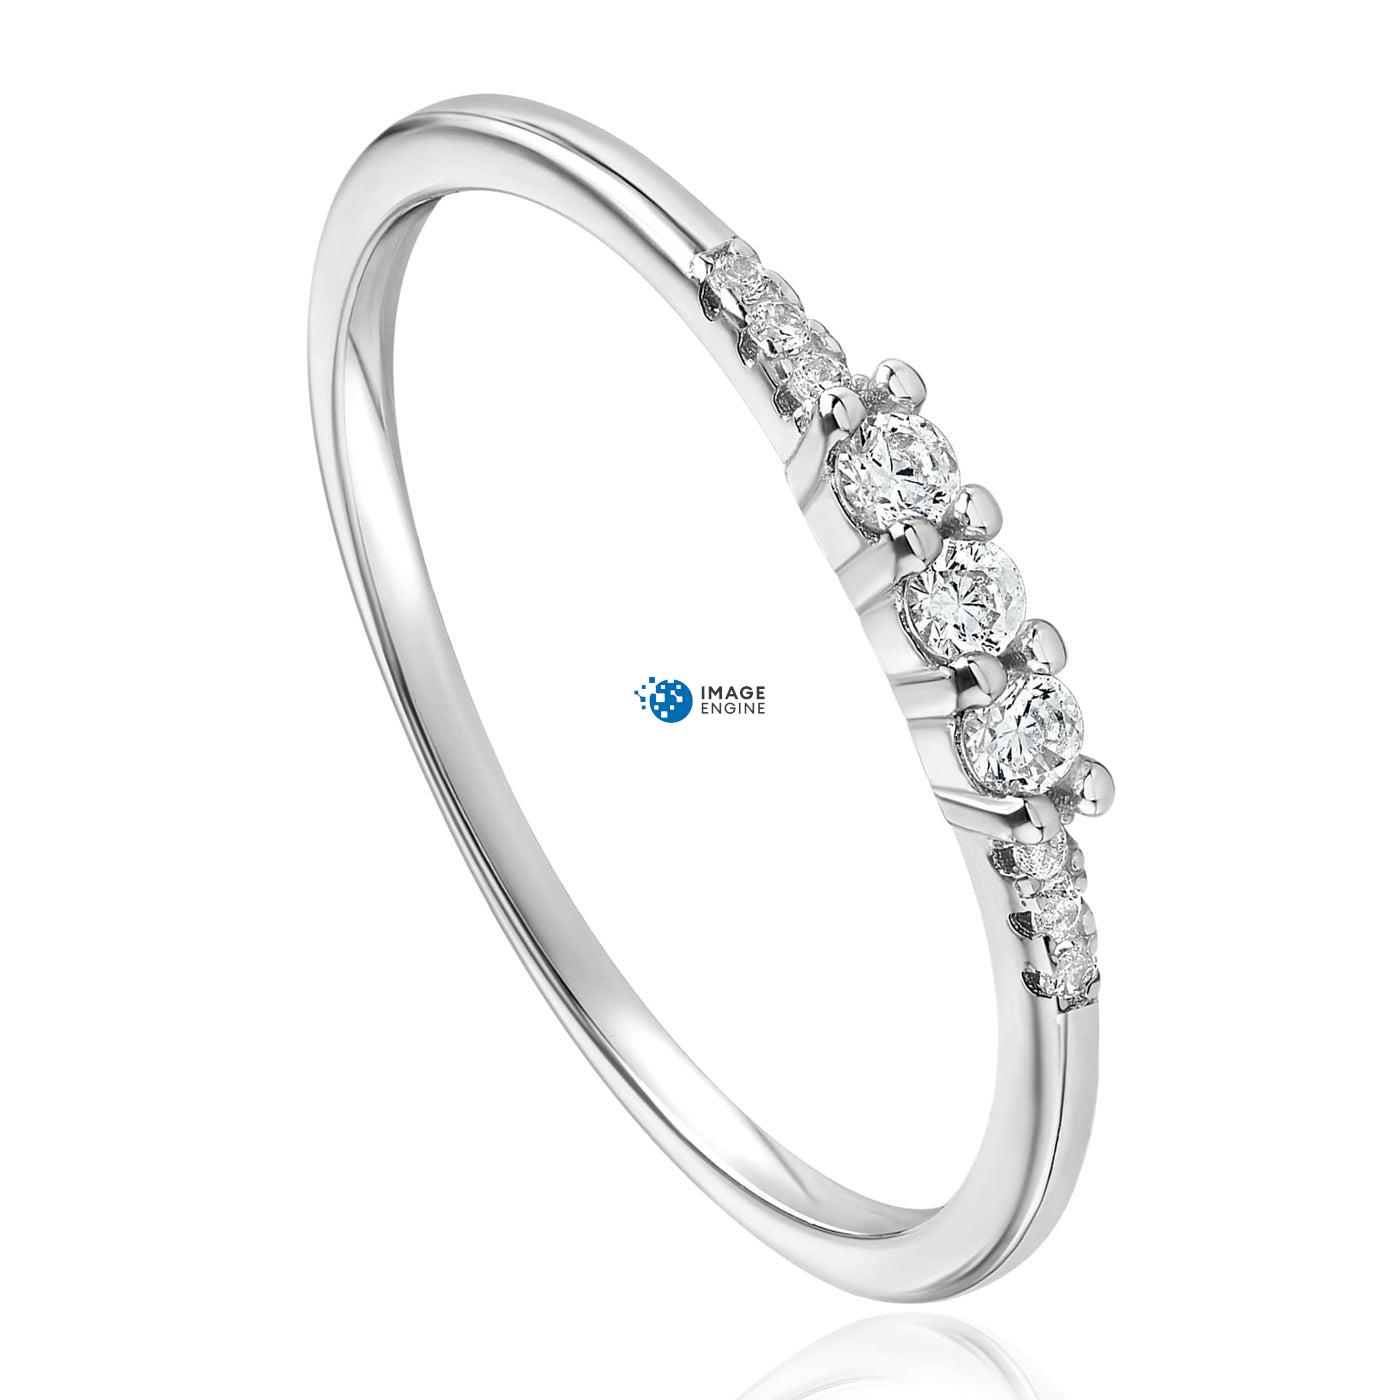 Emie Ring - Three Quarter View - 925 Sterling Silver